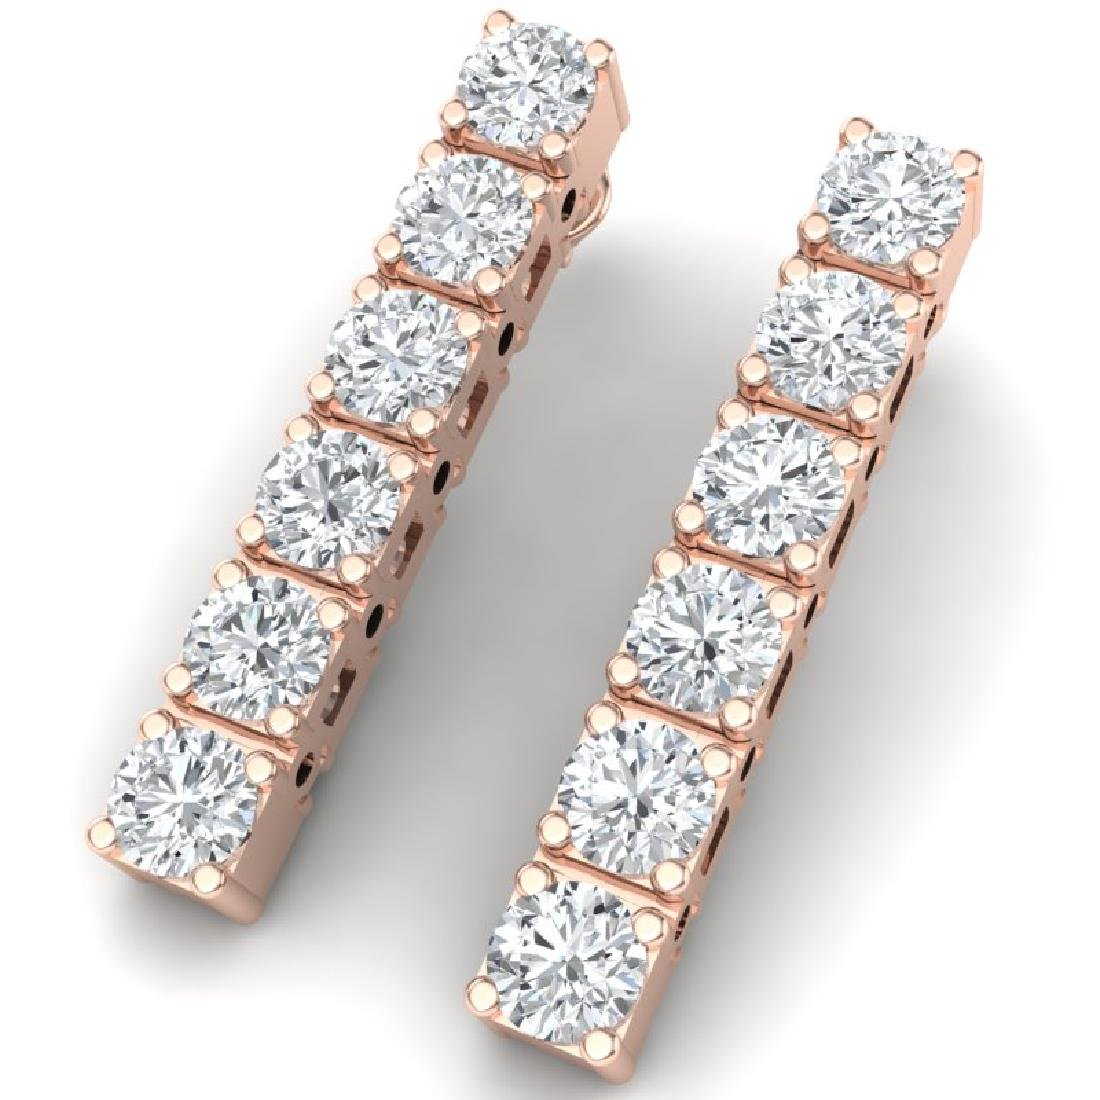 6 CTW Certified SI Diamond Earrings 18K Rose Gold